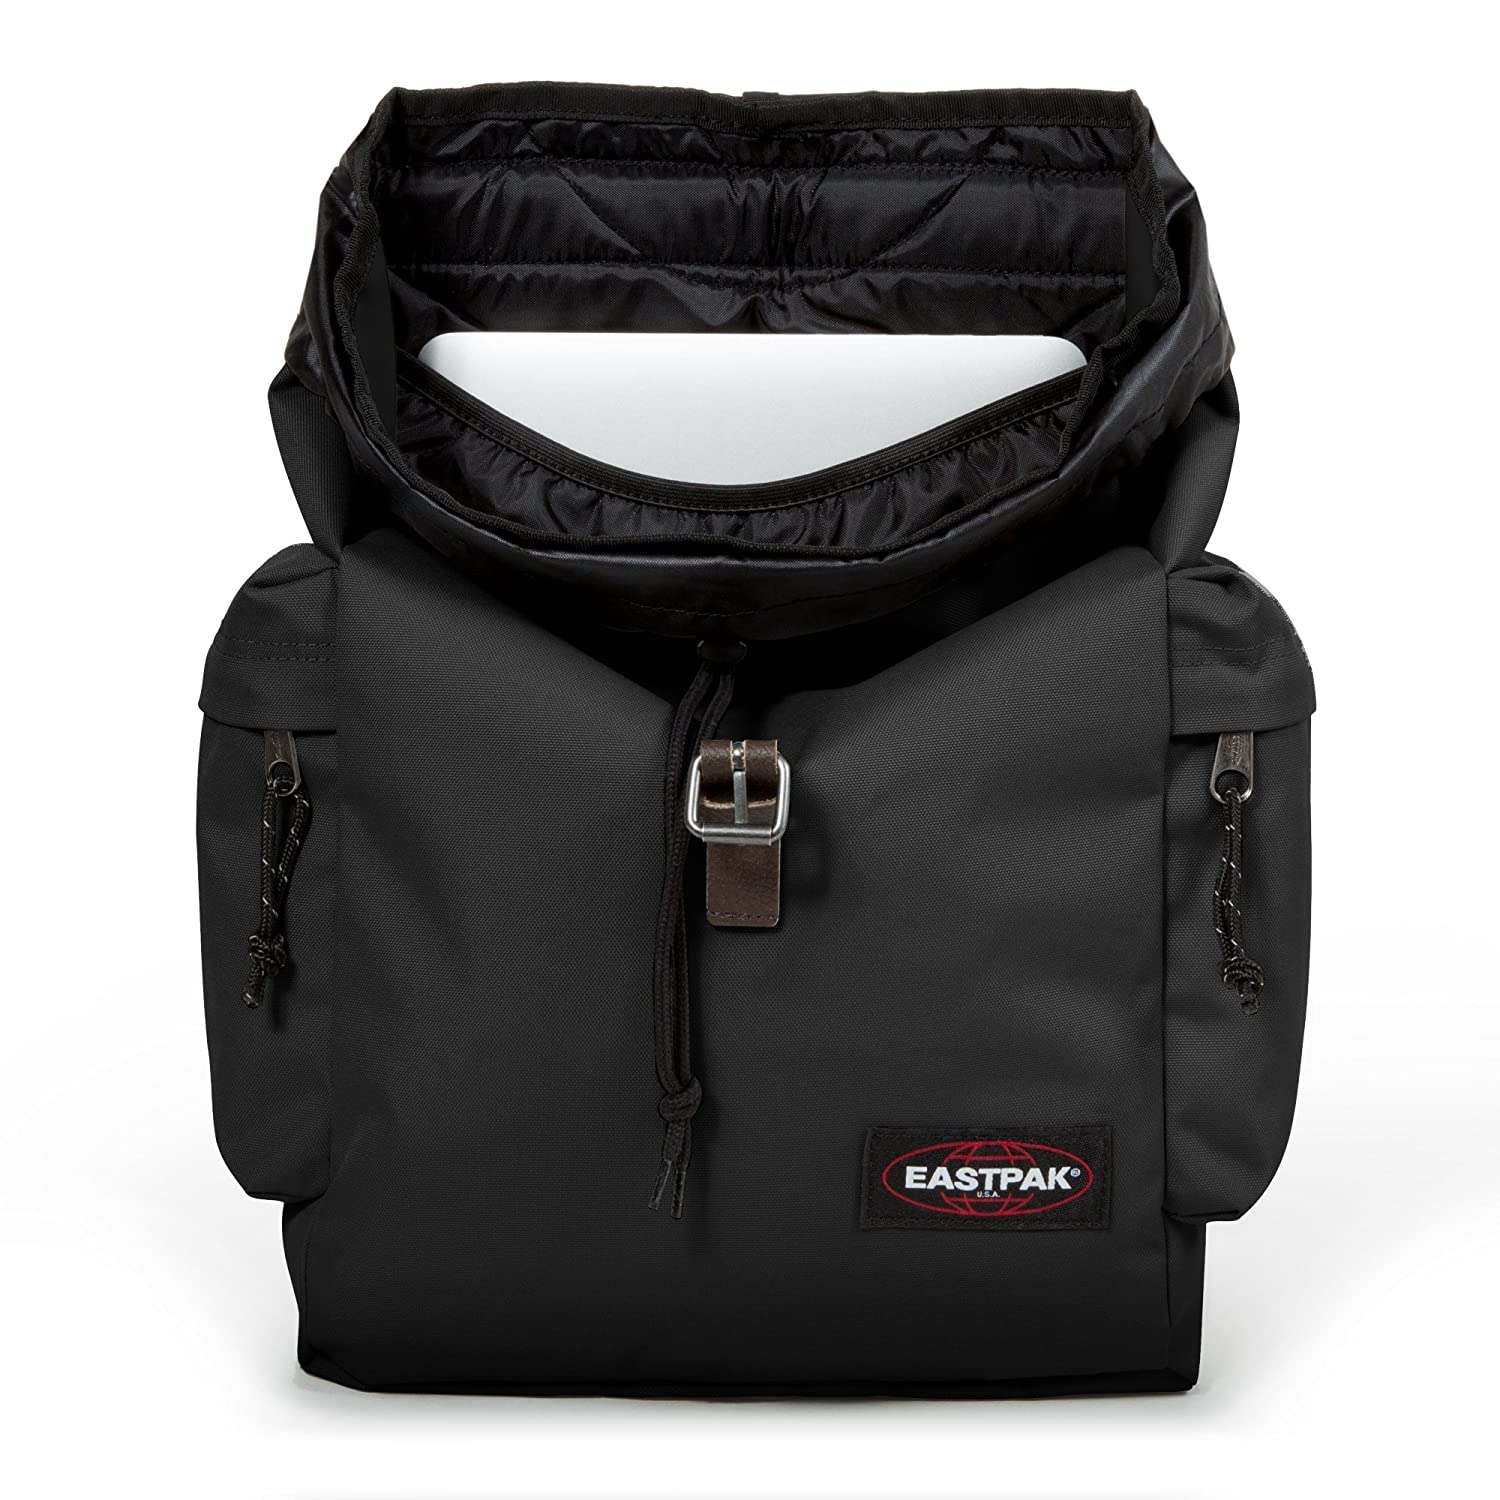 eastpak austin laptop backpack one size black clothing